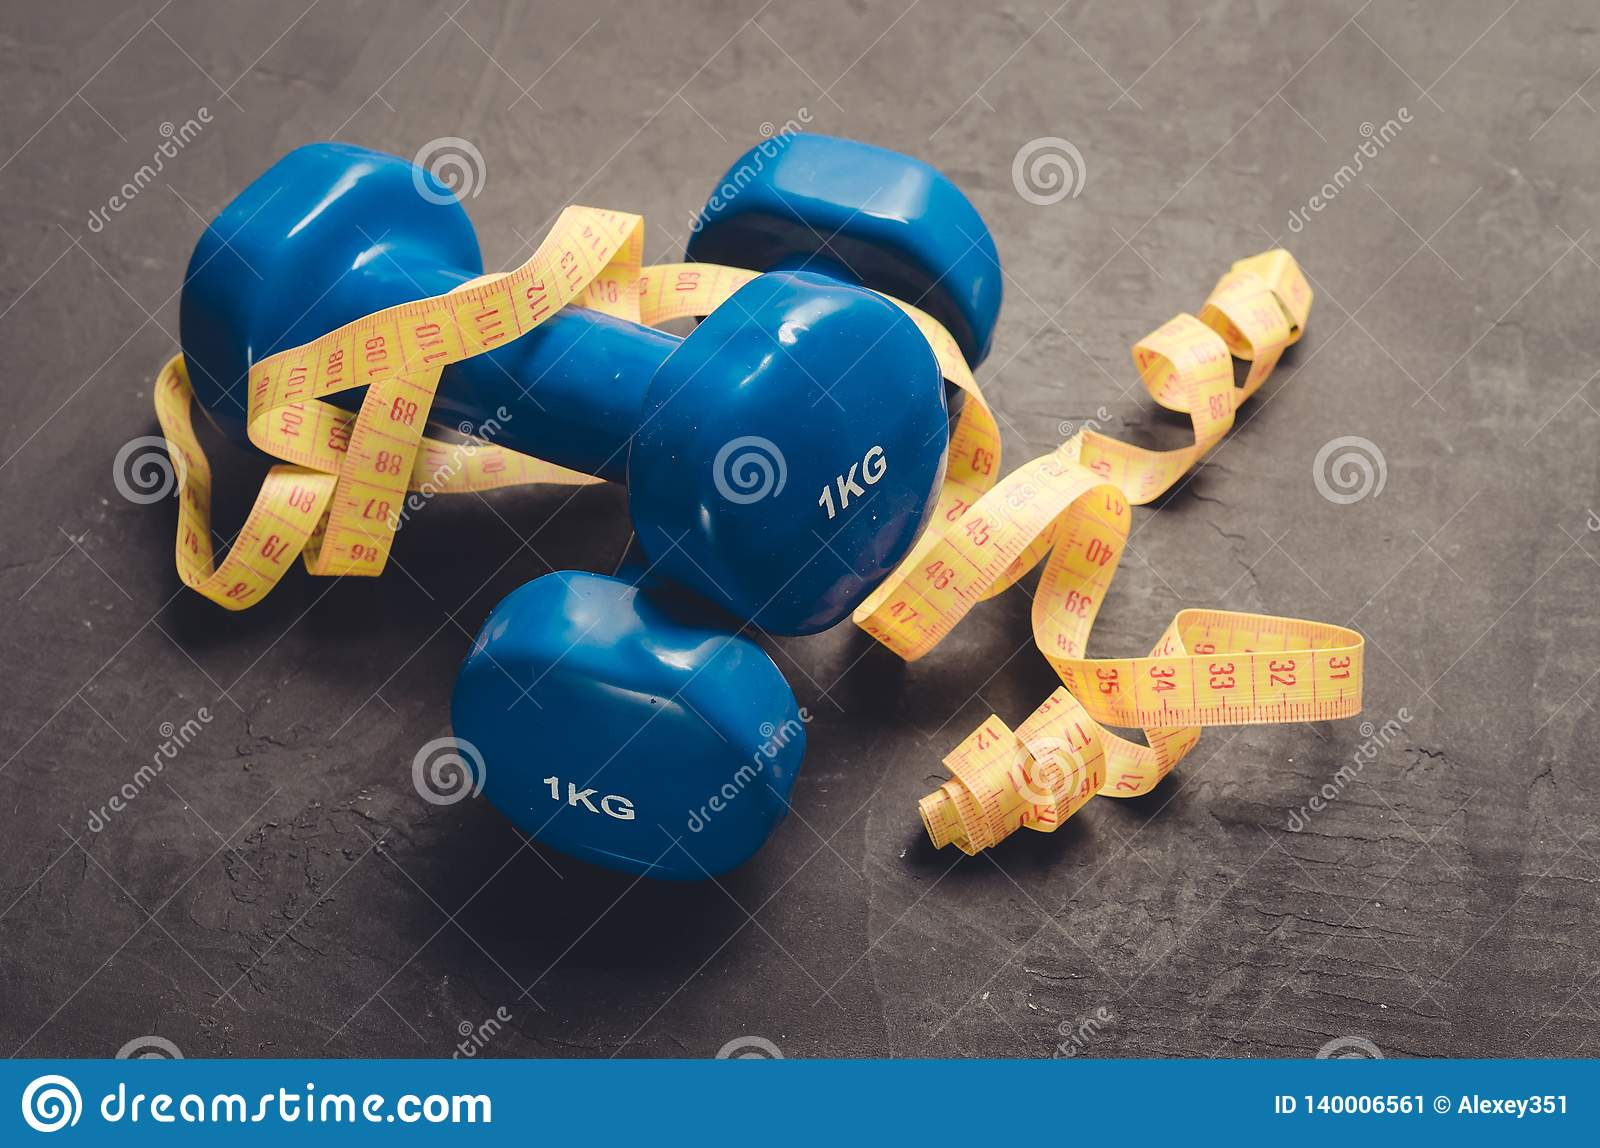 Sports equipment on a dark background. Top view/ Sports equipment with Blue dumbbells and yellow centimeter